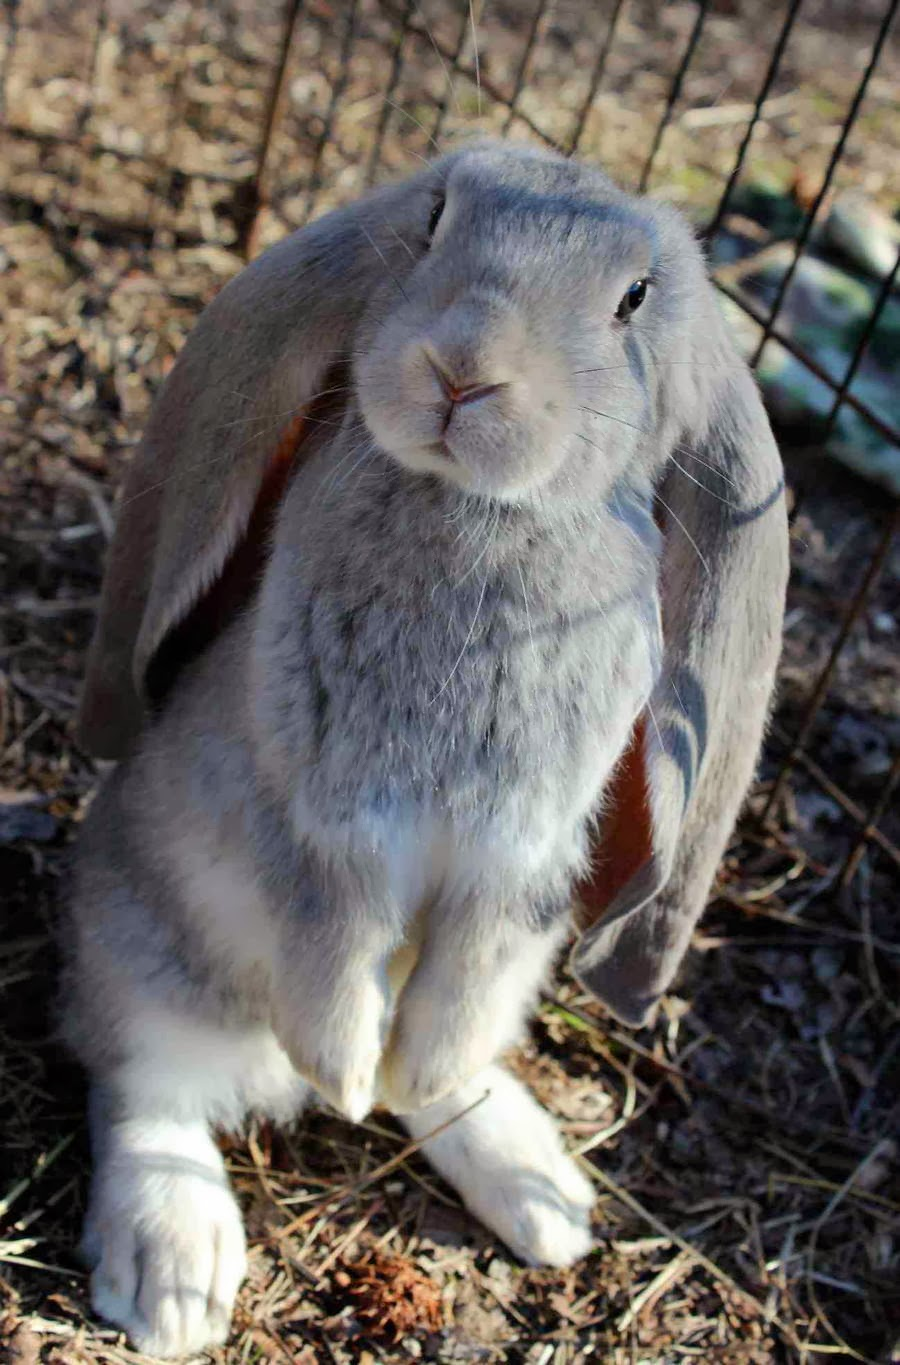 Funny animals of the week - 21 February 2014 (40 pics), rabbit with long ears